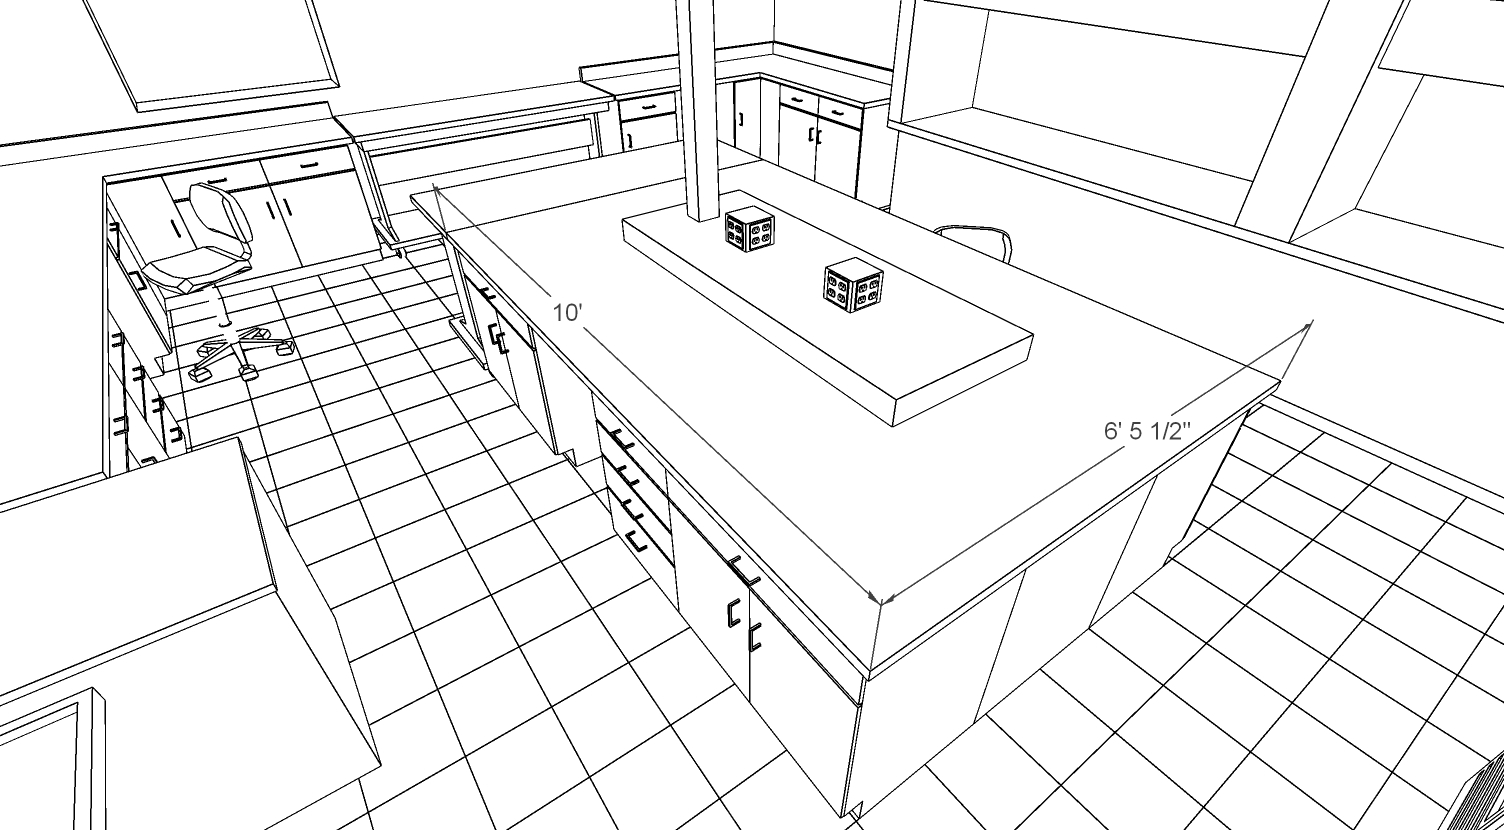 SketchUp model of lab